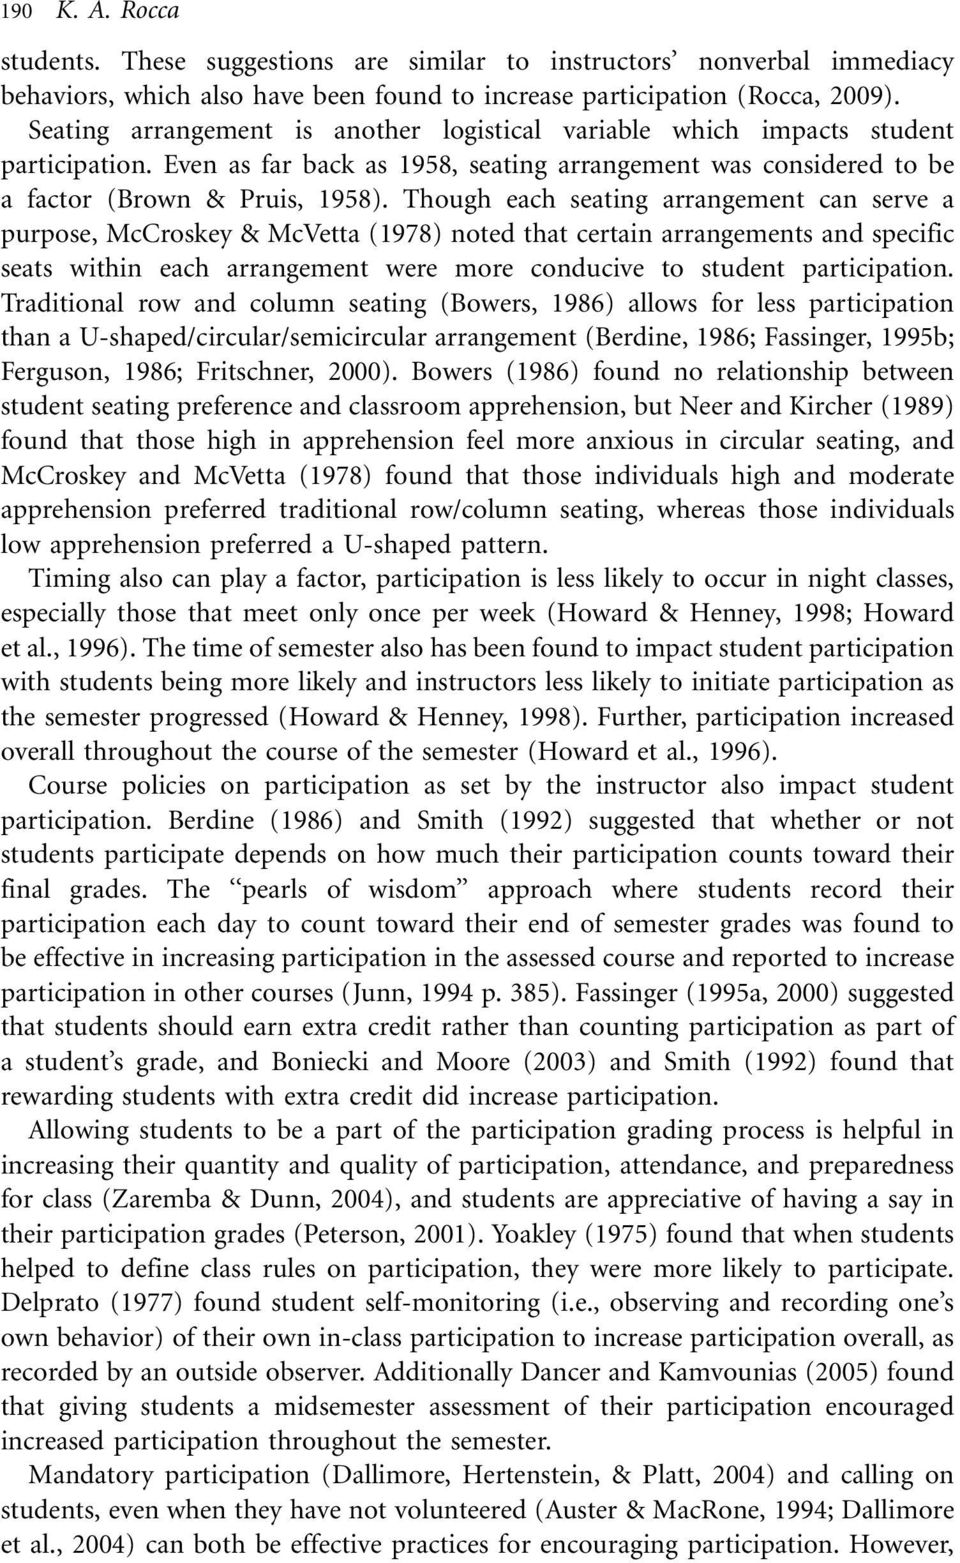 Though each seating arrangement can serve a purpose, McCroskey & McVetta (1978) noted that certain arrangements and specific seats within each arrangement were more conducive to student participation.